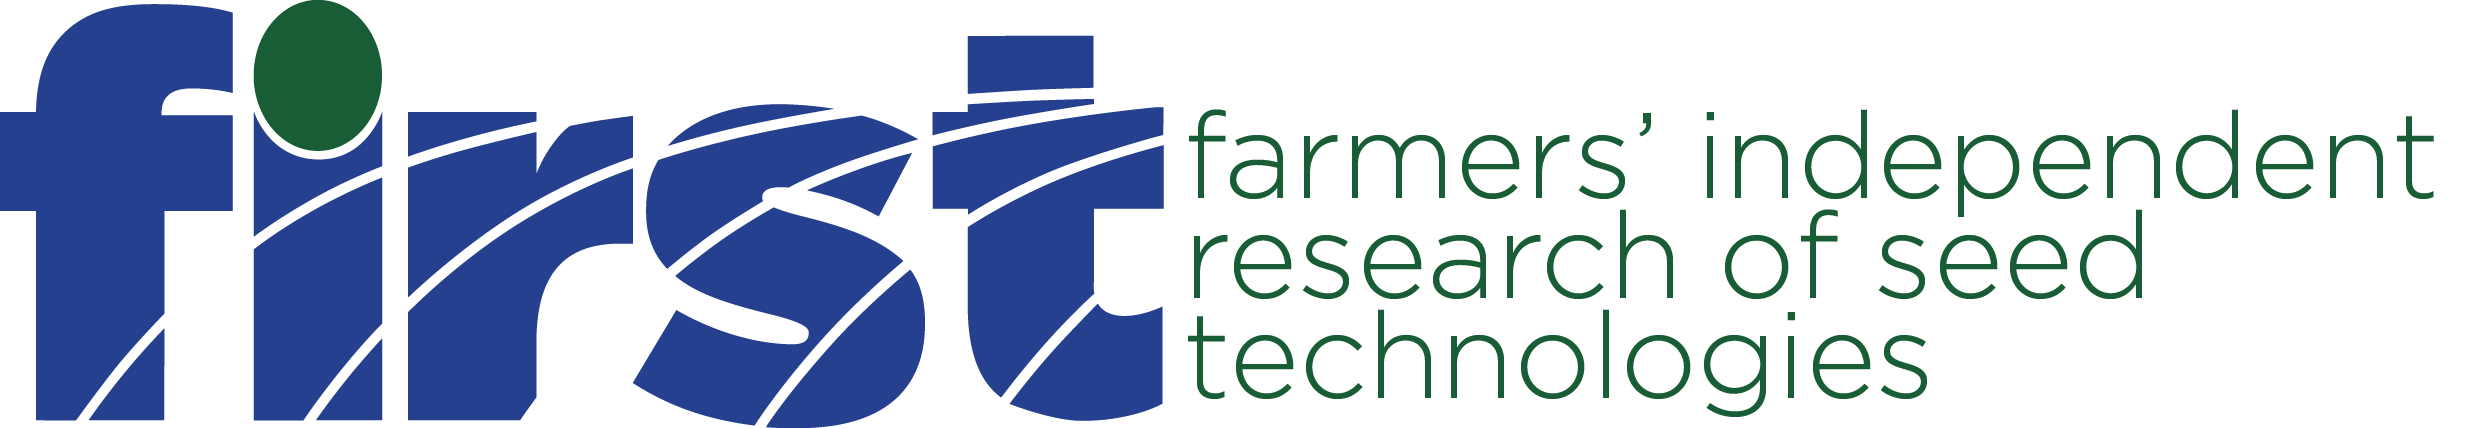 Farmers Independent Testing of Seed Technologies